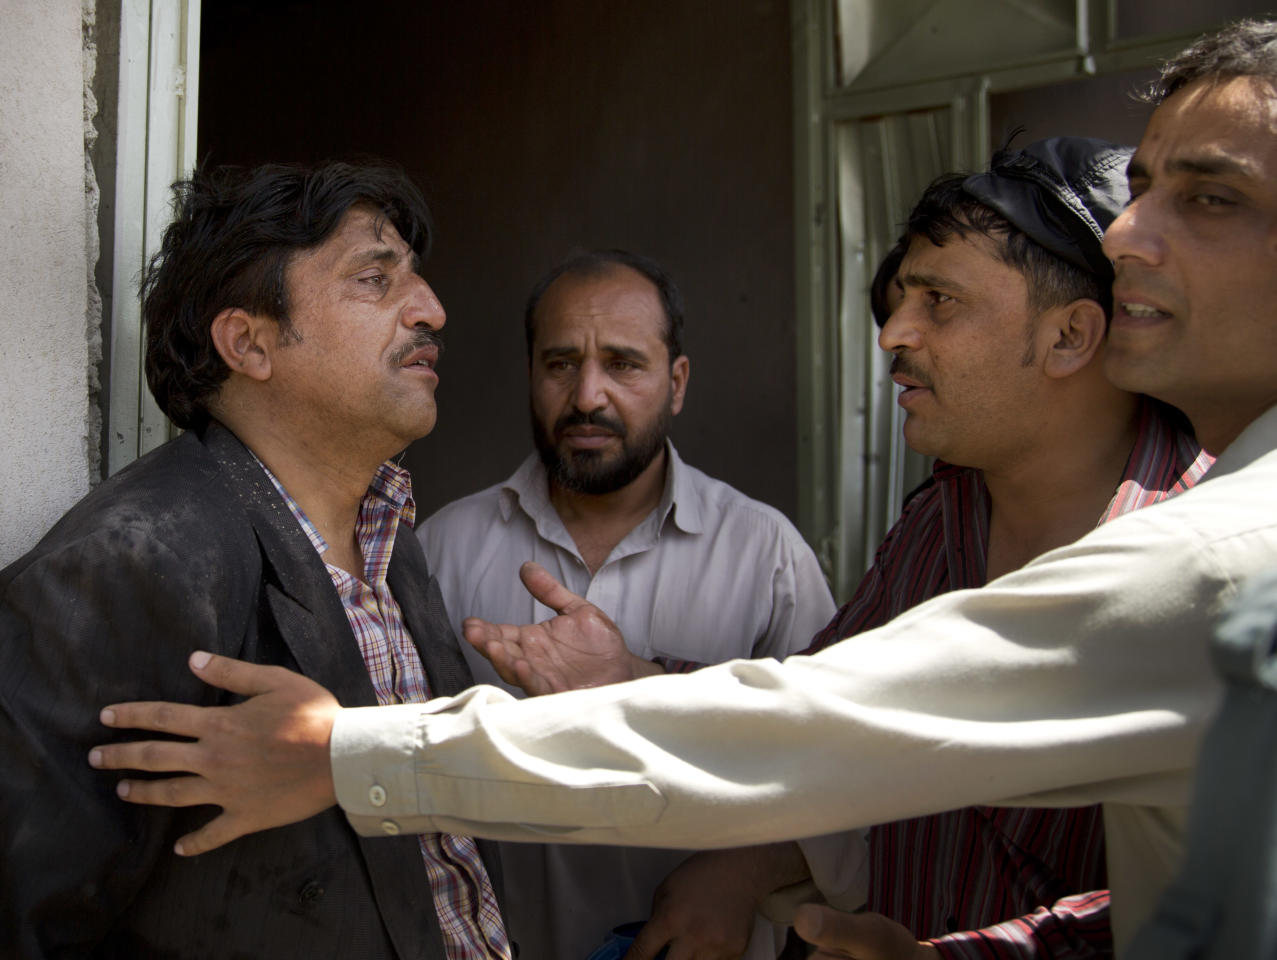 Afghans comfort a man, left, who claims he has lost all his children at the scene where a suicide car bomber attacked a NATO convoy in Kabul, Afghanistan, Thursday, May 16, 2013. A Muslim militant group, Hizb-e-Islami, claimed responsibility for the early morning attack, killing at least six people in the explosion and wounding more than 30, police and hospital officials said. The powerful explosion rattled buildings on the other side of Kabul and sent a pillar of white smoke into the sky in the city's east. (AP Photo/Anja Niedringhaus)